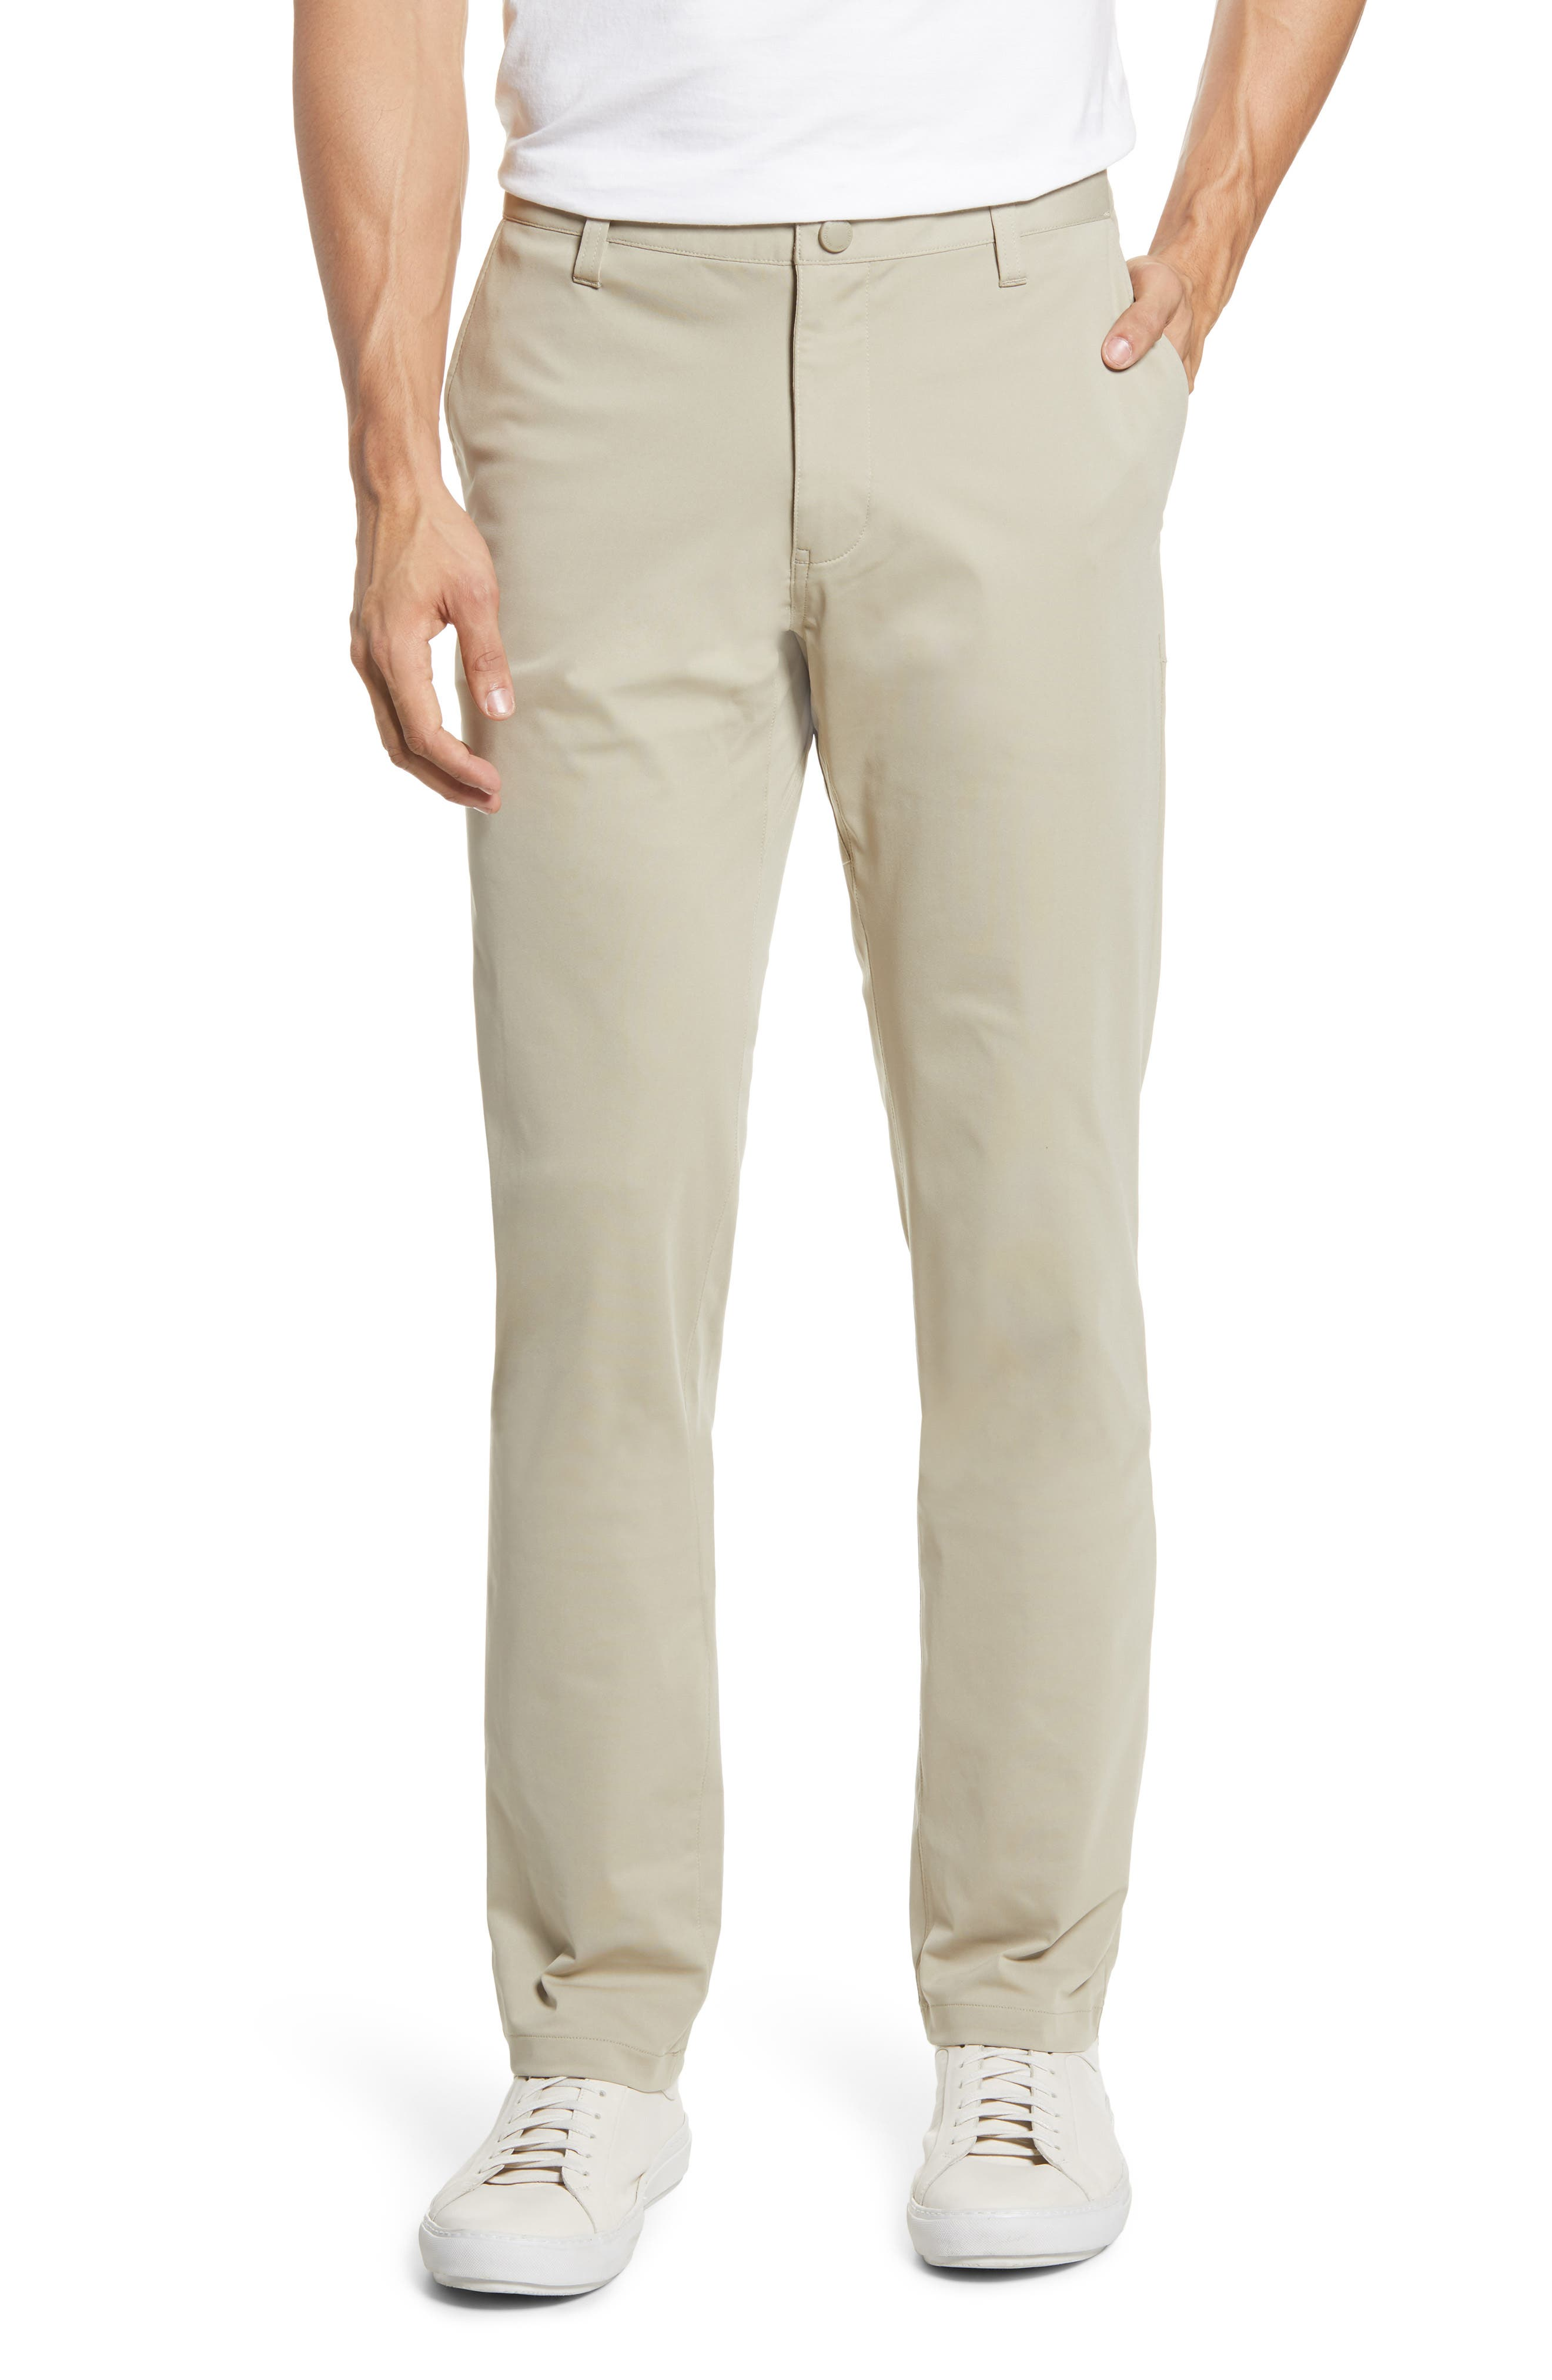 A flat front and modern slim fit take you anywhere in comfortable four-way-stretch pants fitted with secure hidden pockets for your phone, currency or tunes. Style Name: Rhone Commuter Slim Fit Pants. Style Number: 5892451. Available in stores.